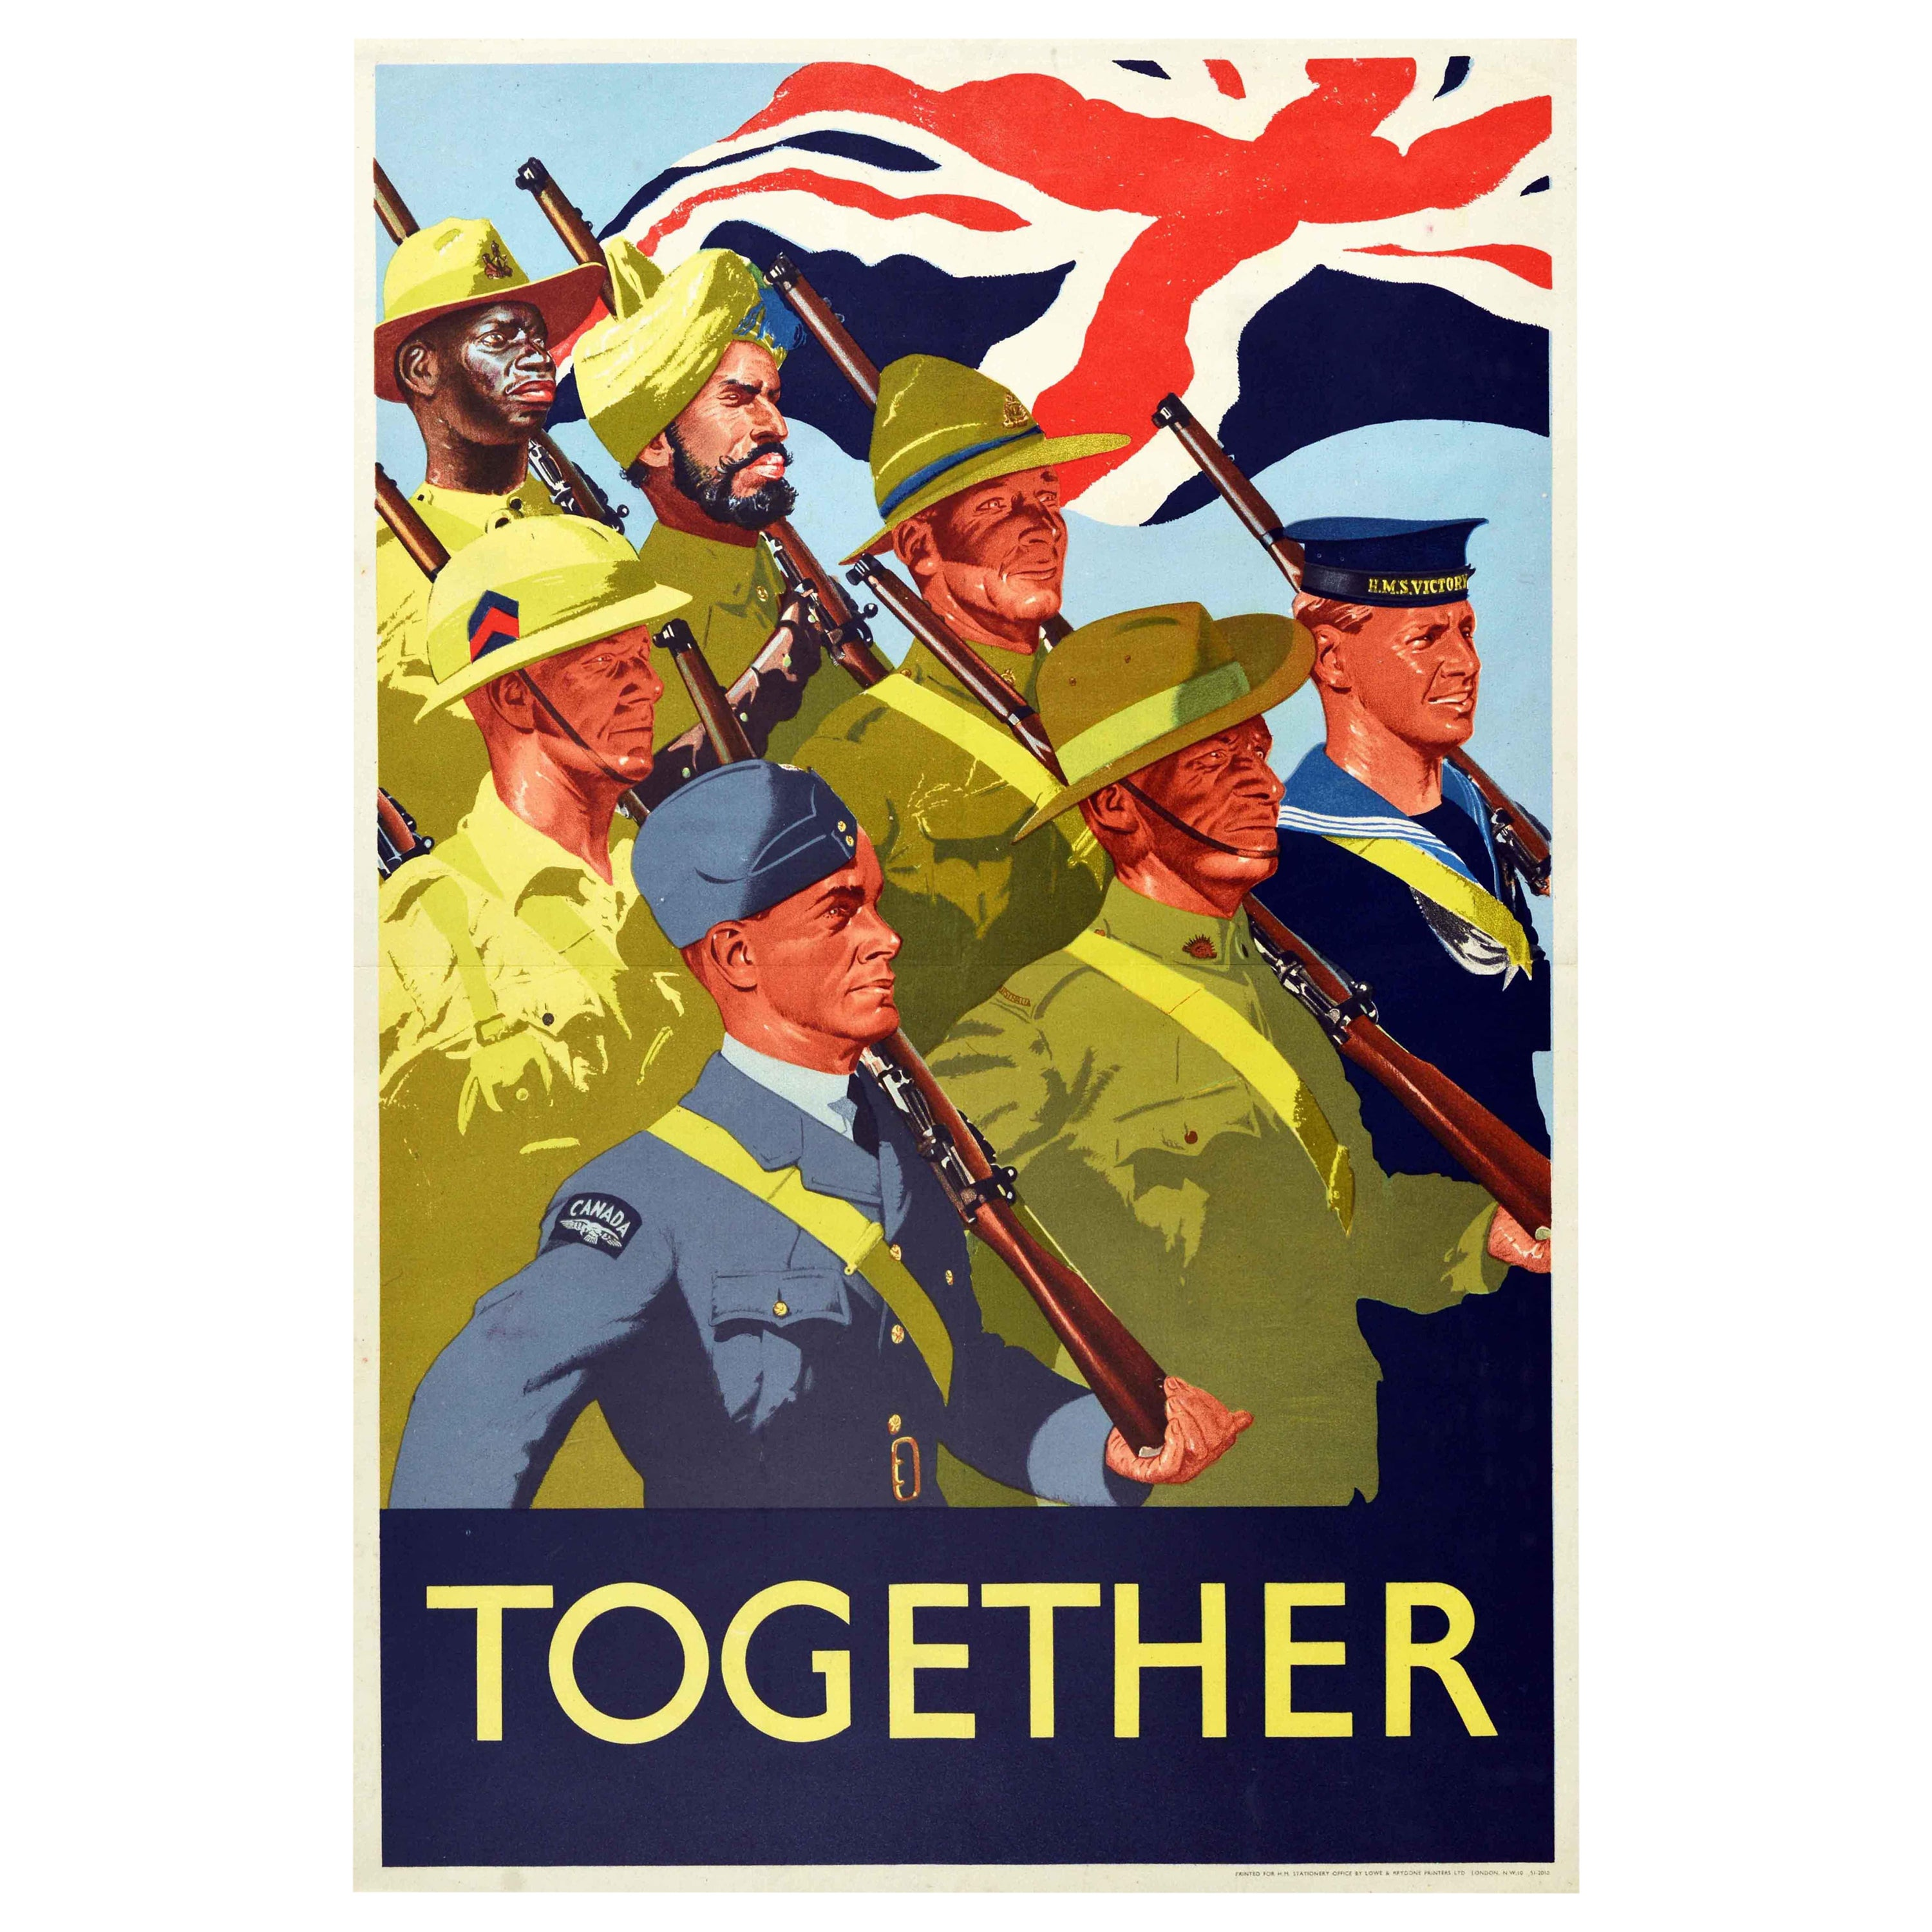 Original Vintage Poster Together Commonwealth Forces WWII Military Army Soldiers